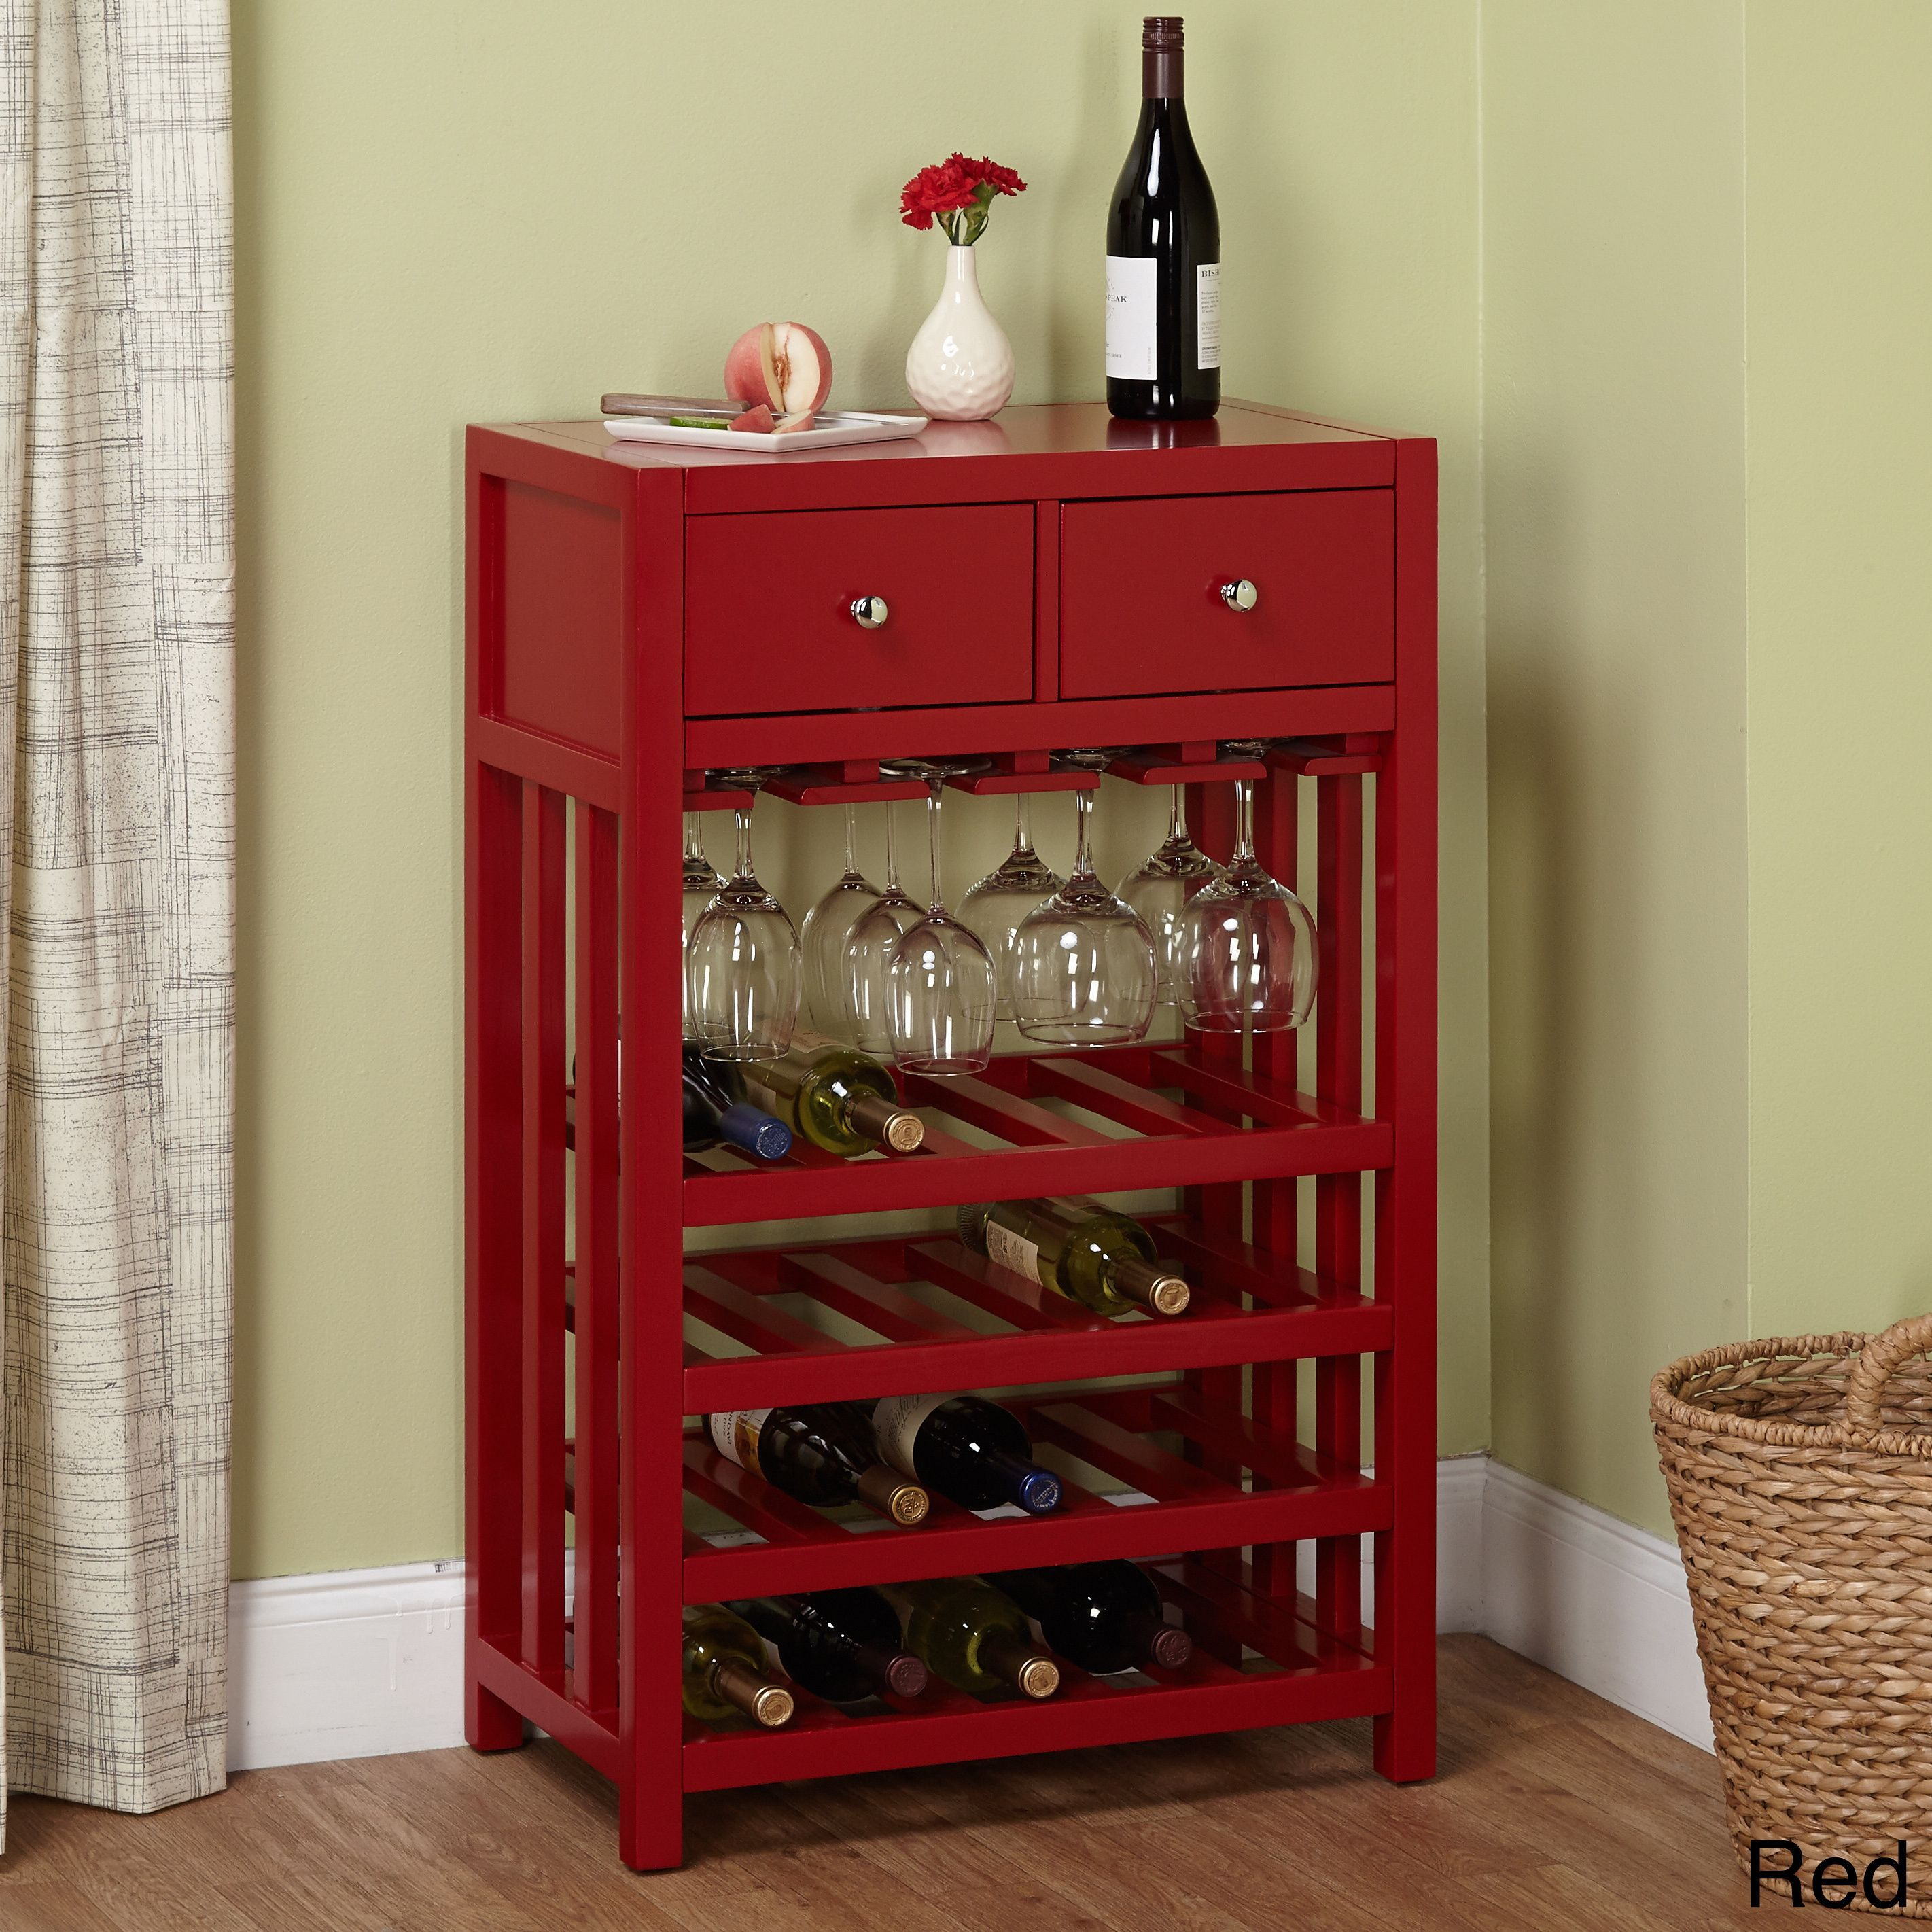 Simple Living Napa Wood 20 Bottle Wine Tower Red Black Wine Cabinets Wine Storage Wood Wine Racks